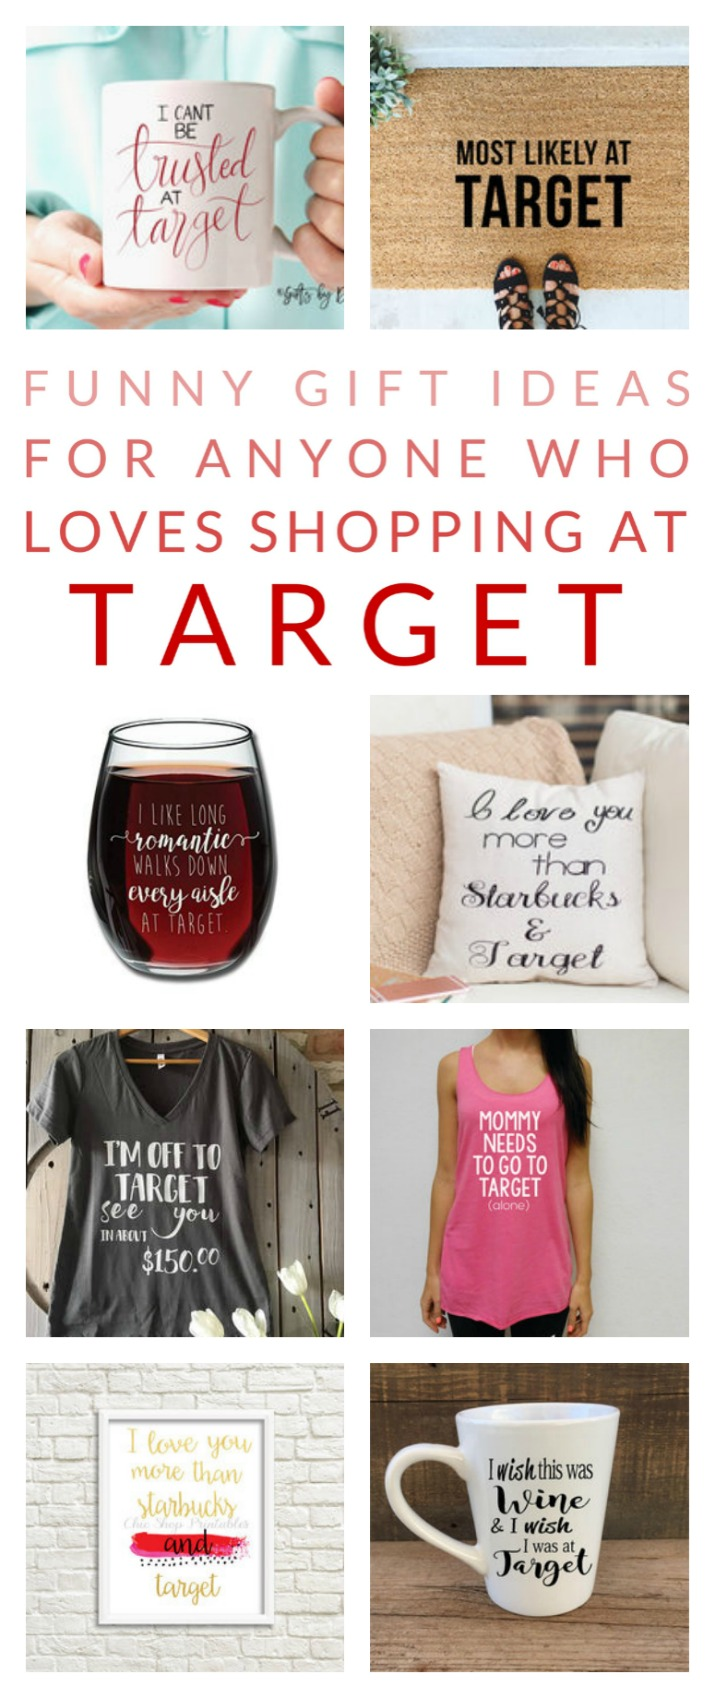 Gifts for friends who love target shopping guide for the target do you love target does your friend love target then these funny gift ideas negle Choice Image